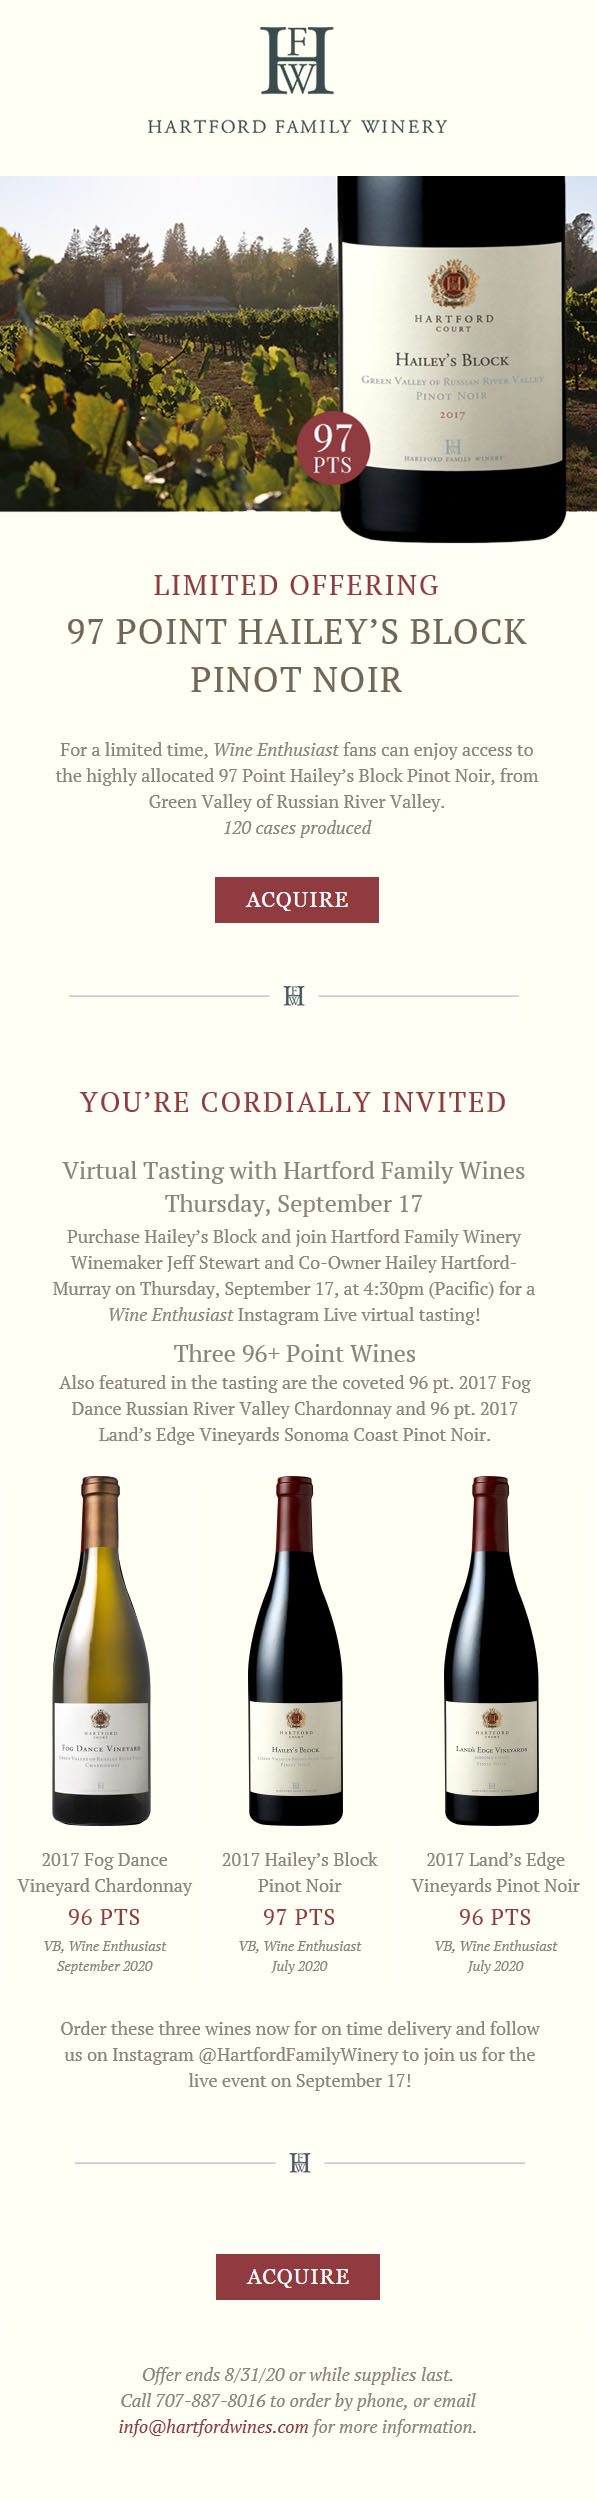 Hartford Winery Virtual Tasting